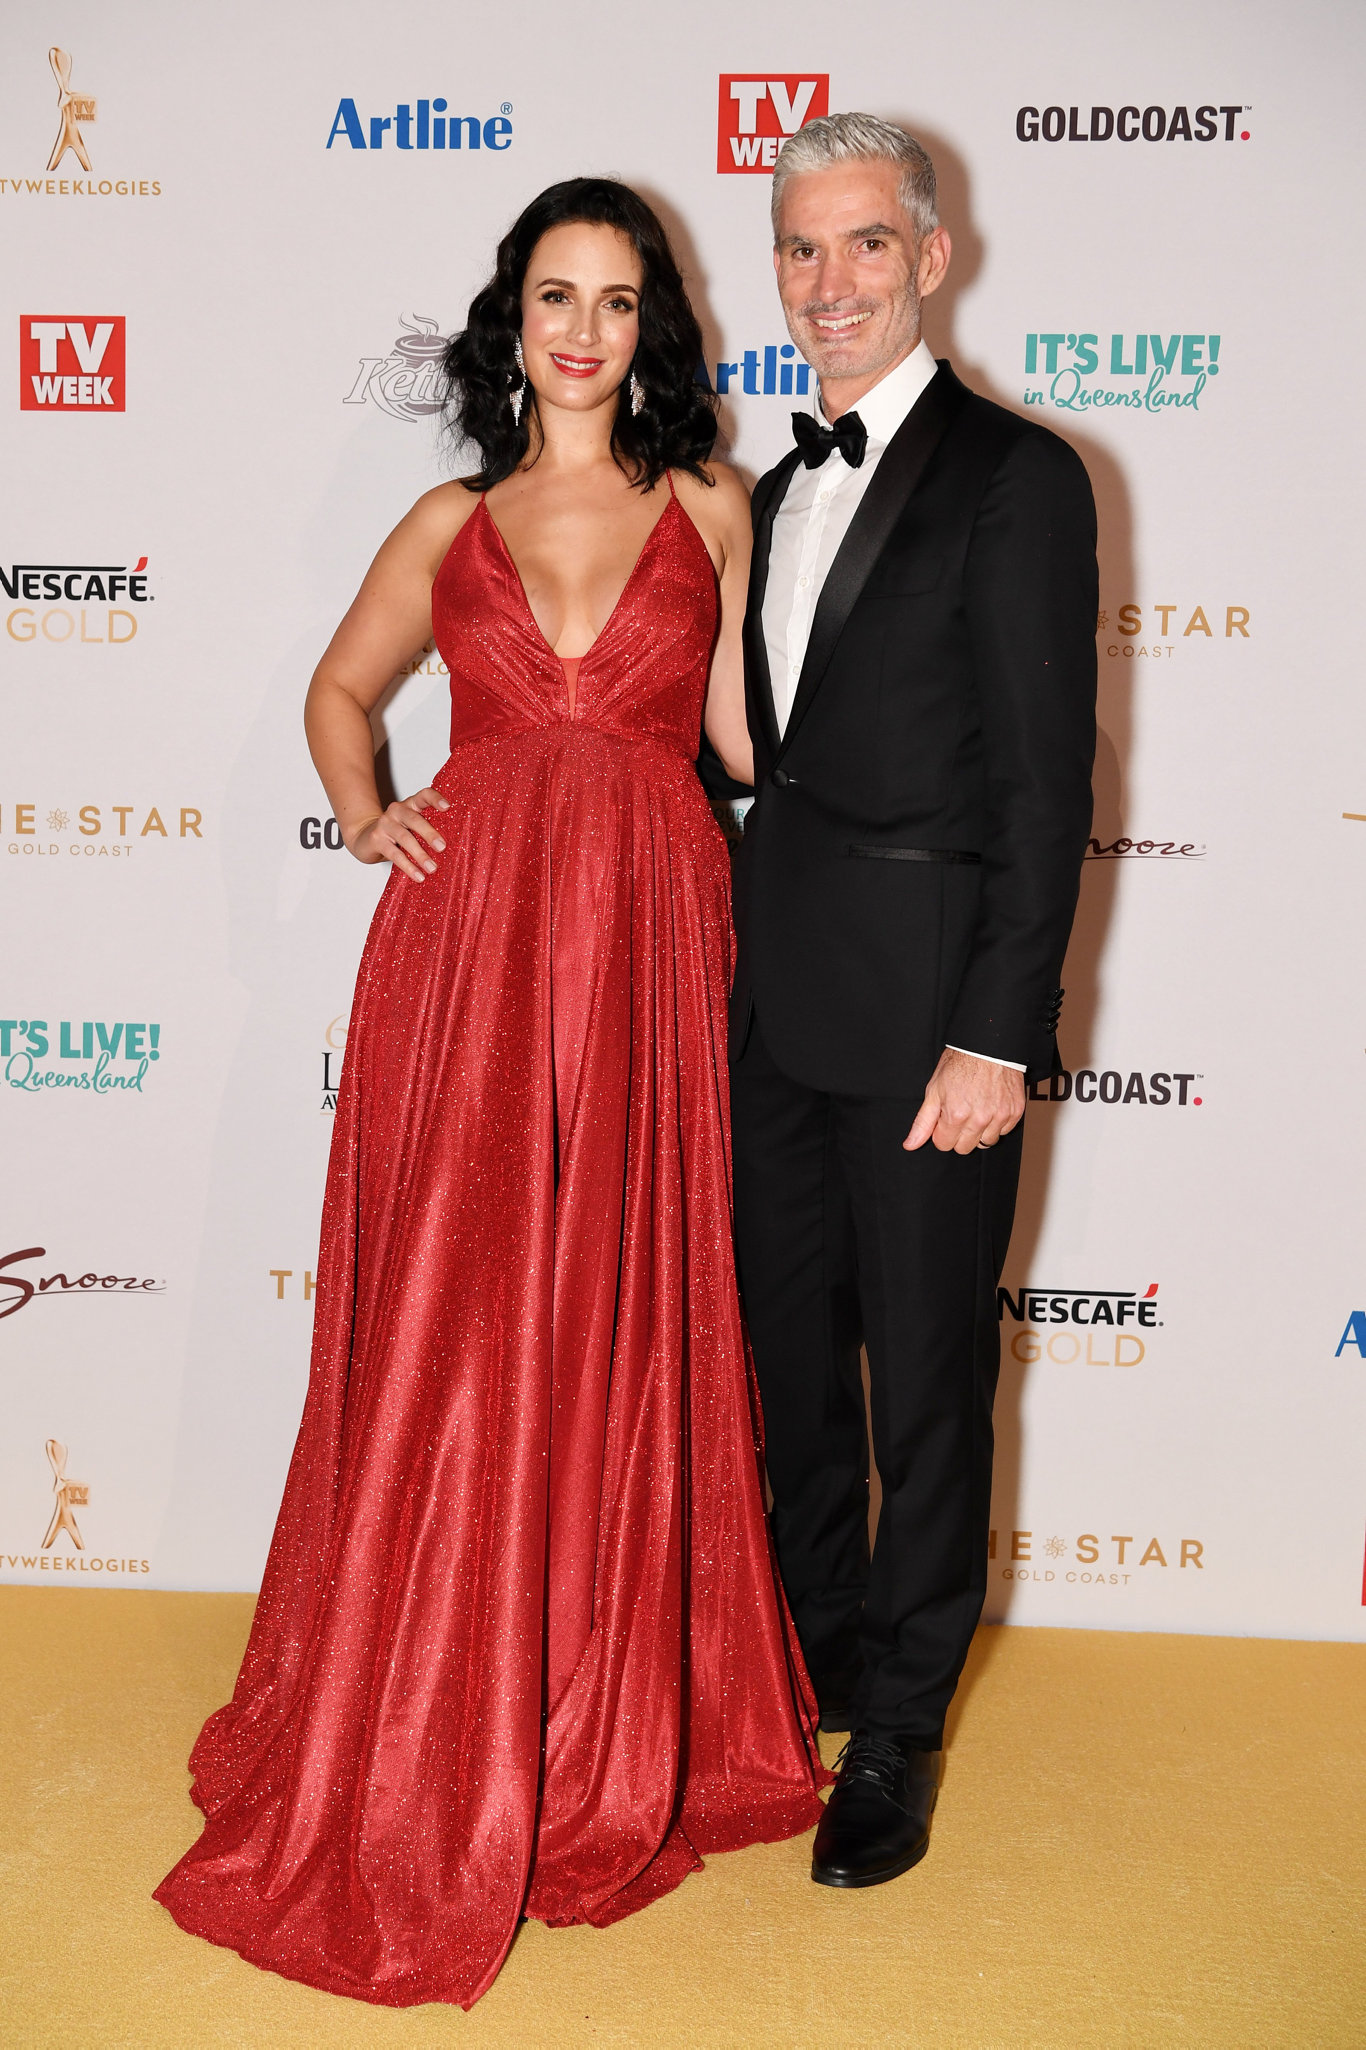 Lucy Zelic (left) and Craig Foster arrive at the 2019 Logie Awards at The Star Casino on the Gold Coast, Sunday, June 30, 2019.